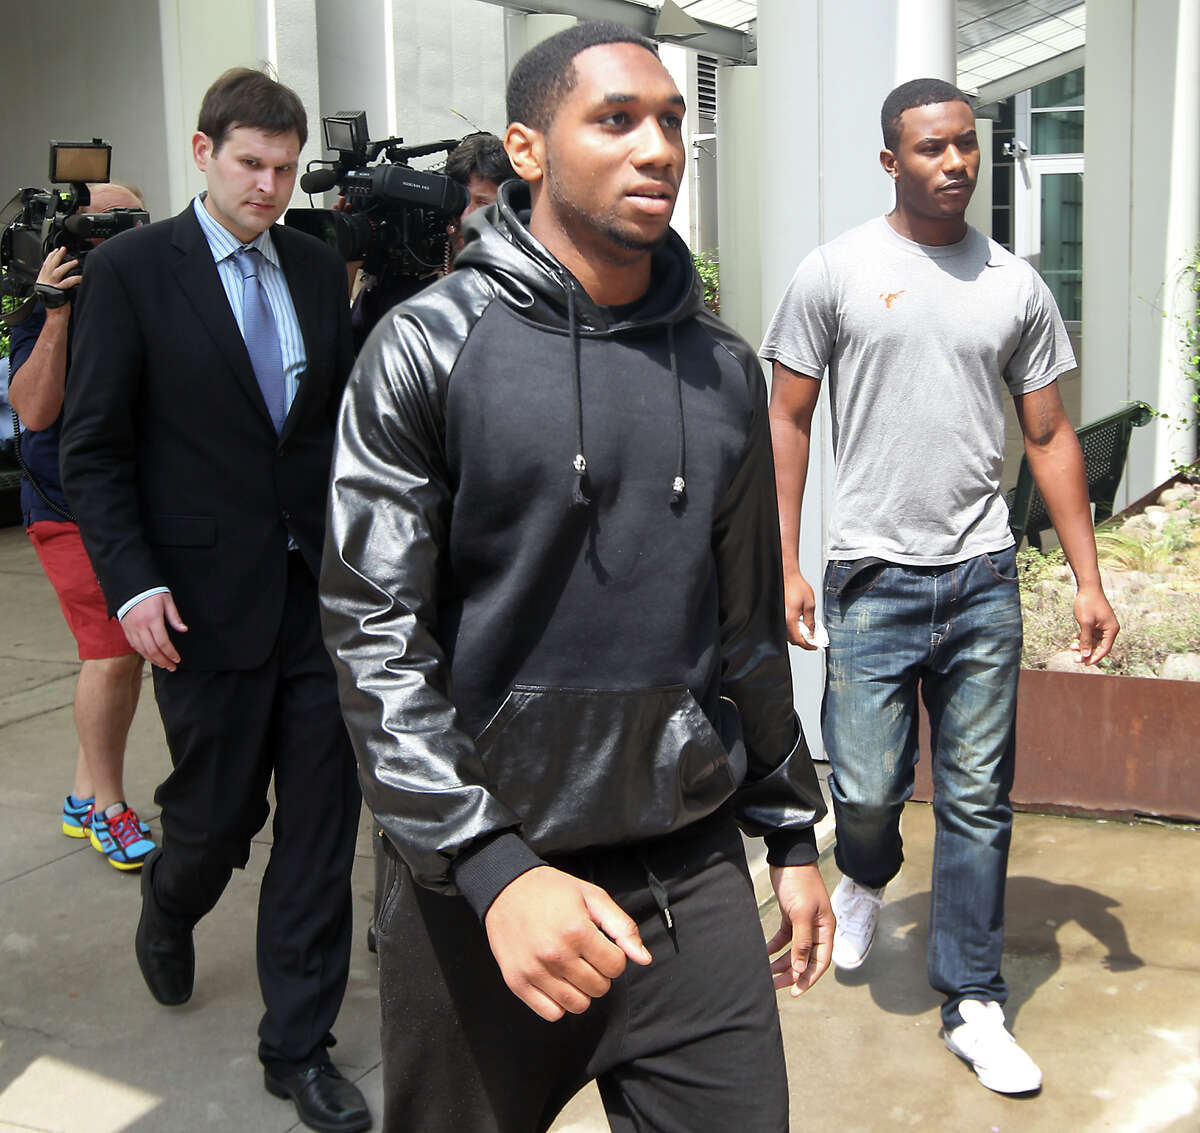 Those values were put to the test last July when two players -- Kendall Sanders and Montrel Meander -- were charged with felony sexual assault after a female student said she was raped in a campus dorm room last month. Strong dismissed both players from the team.Pictured, Sanders, left, and Meander, right, leave the Travis County Criminal Justice Center after being booked, Thursday, July 24, 2014 in Austin, Texas. (AP Photo/Austin American-Statesman, Ralph Barrera) AUSTIN CHRONICLE OUT, COMMUNITY IMPACT OUT, INTERNET AND TV MUST CREDIT PHOTOGRAPHER AND STATESMAN.COM, MAGS OUT